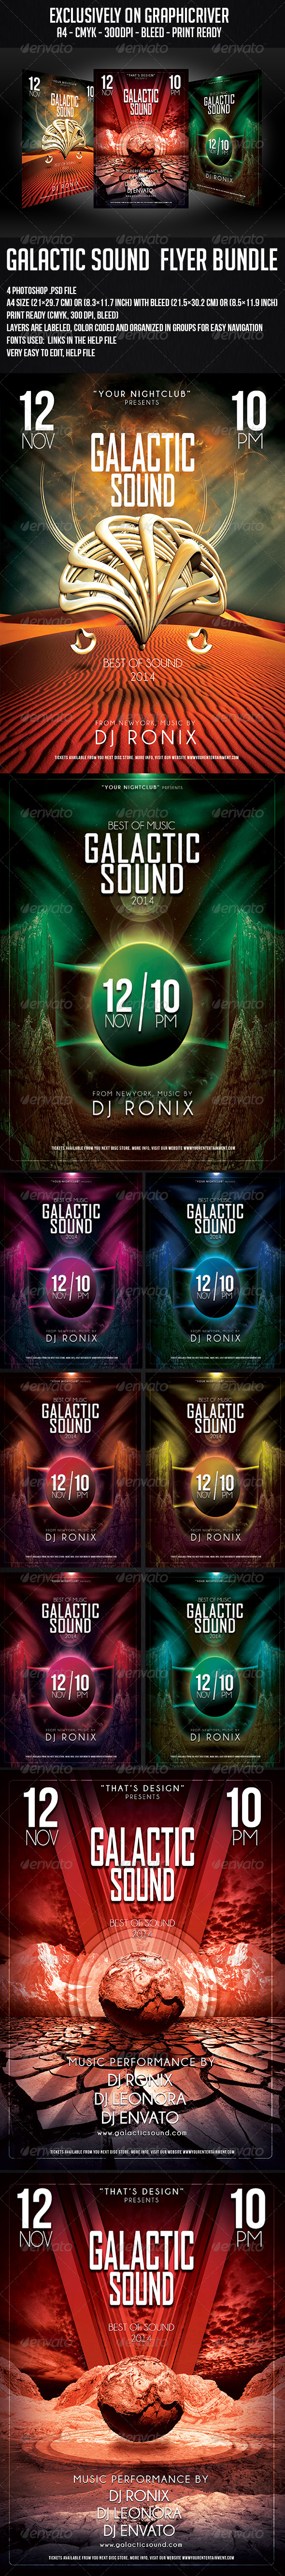 GraphicRiver Galactic Sound Flyer Bundle 6159474